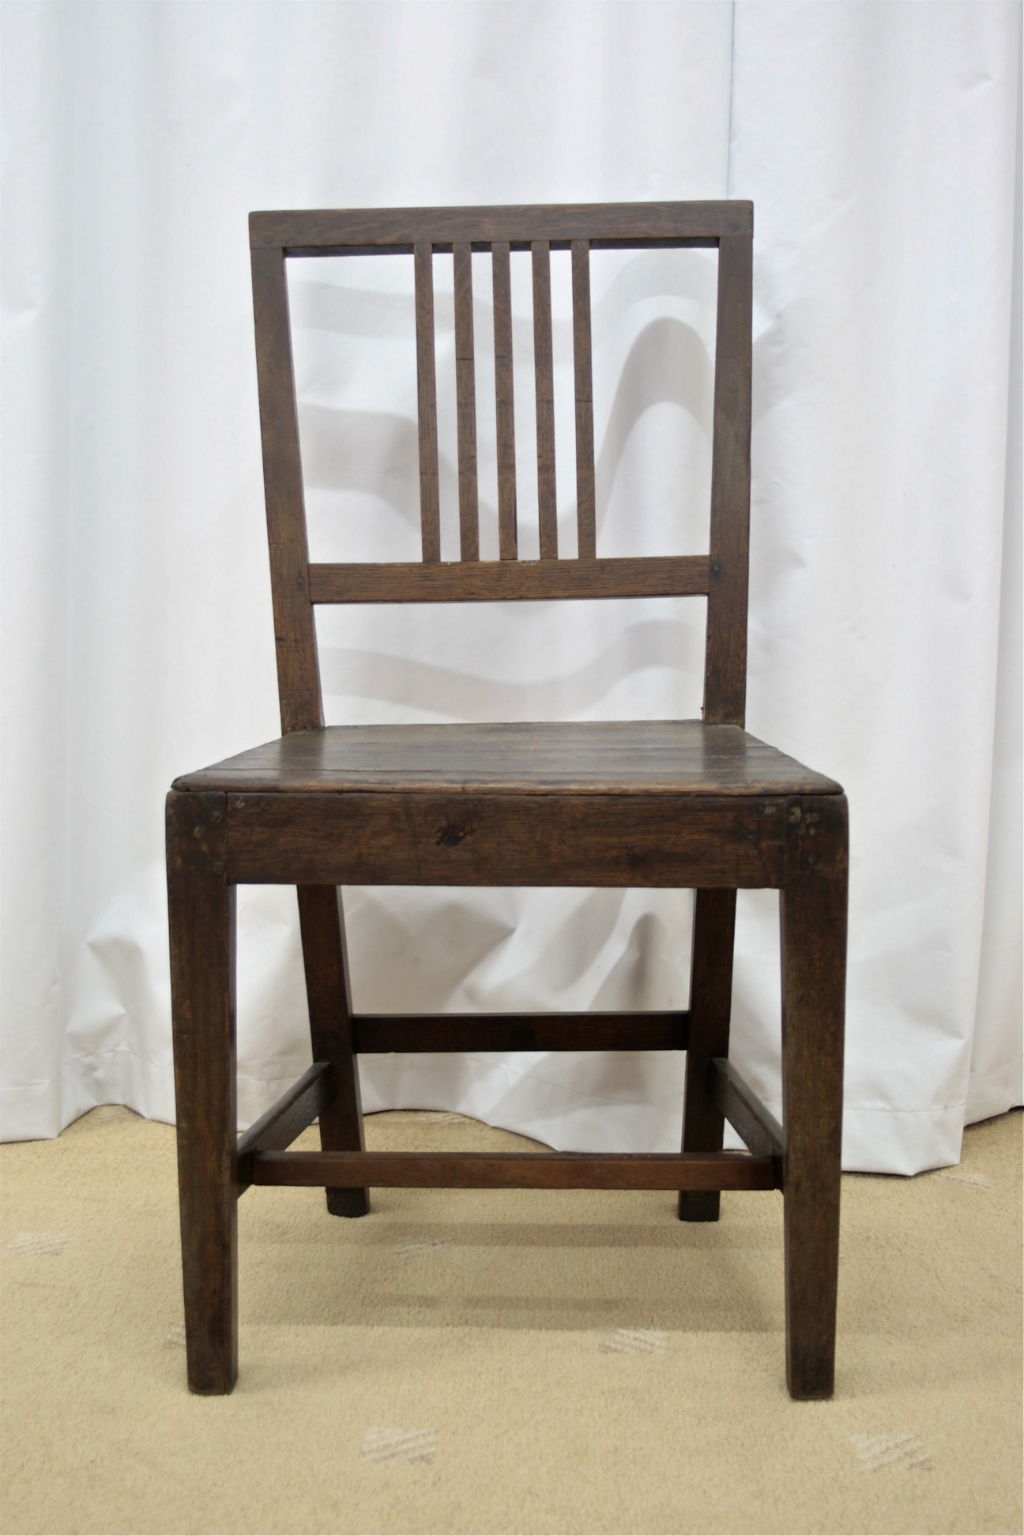 jointed oak dining chair for sale classifieds. Black Bedroom Furniture Sets. Home Design Ideas